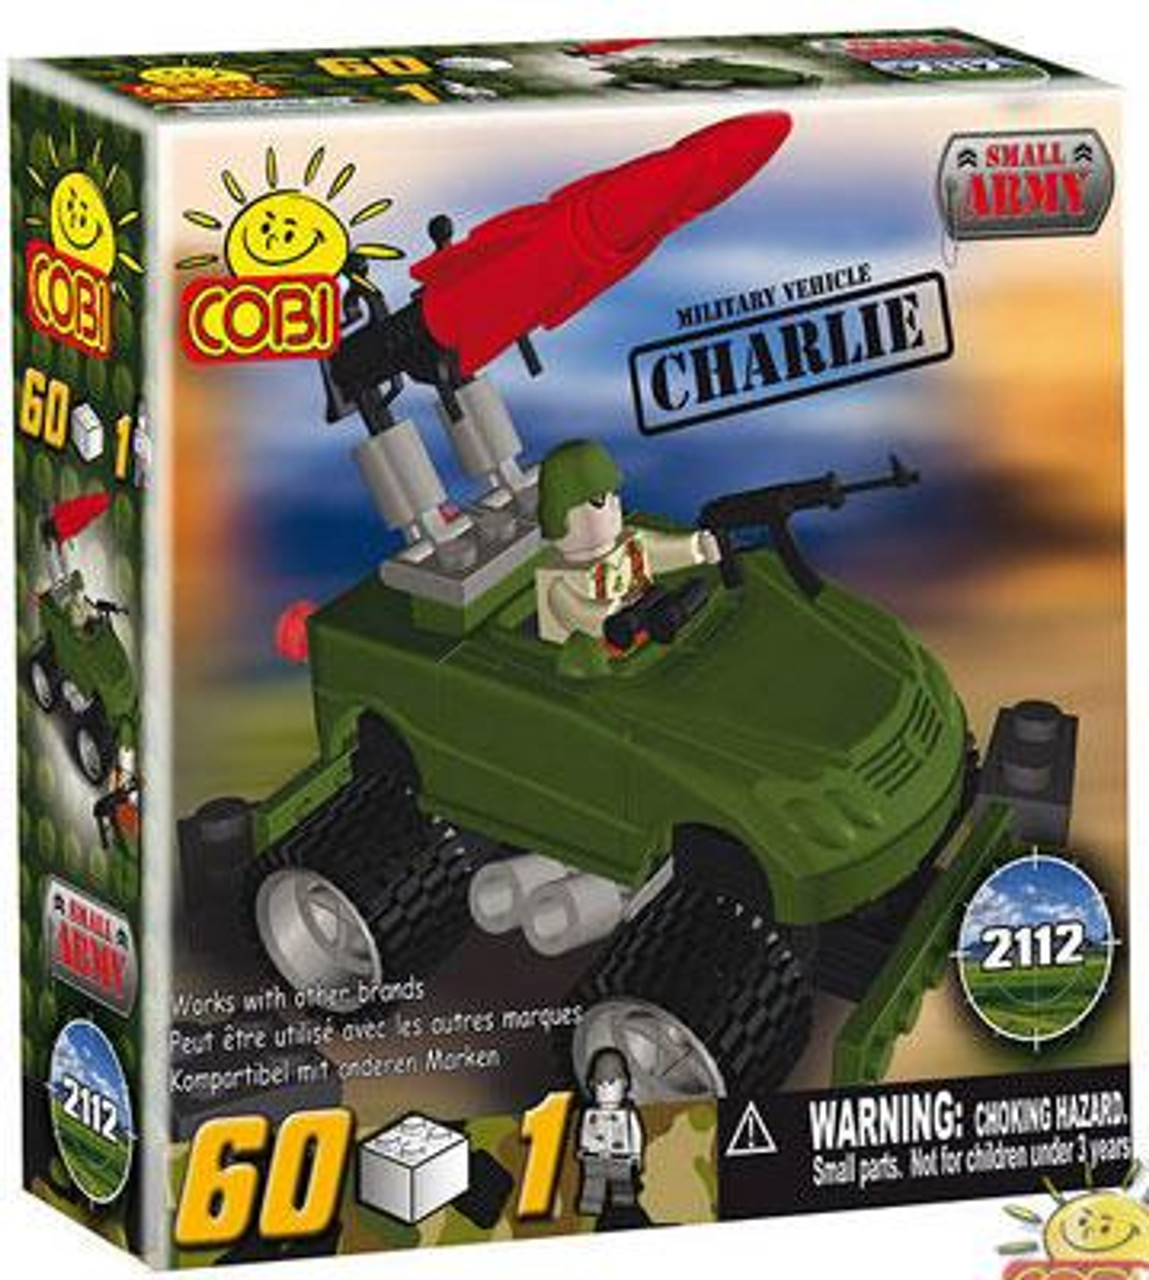 COBI Blocks Small Army Charlie Set #2112